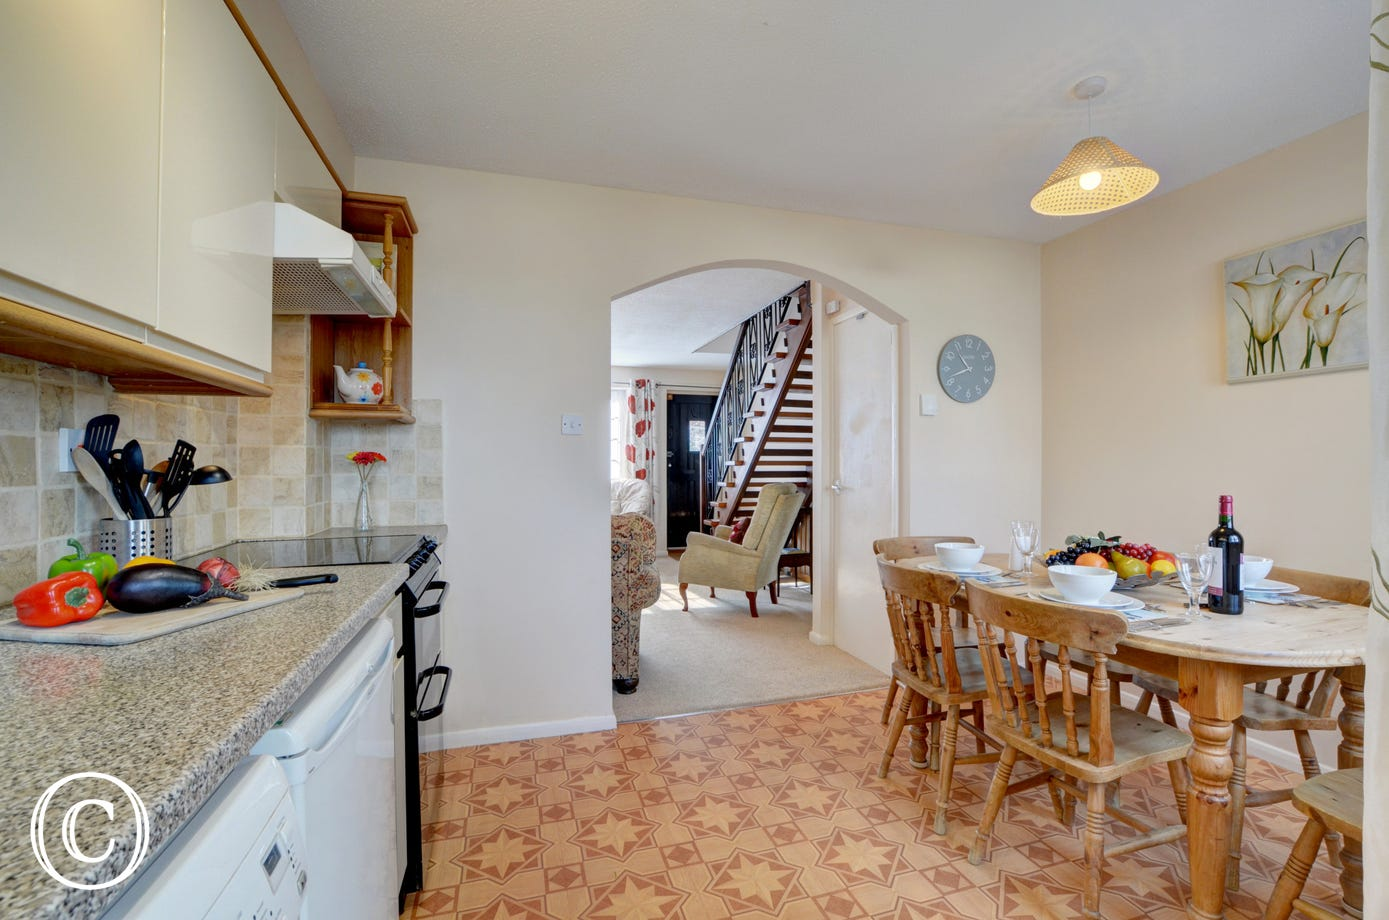 The open plan sitting room and kitchen feels spacious and great for socialising